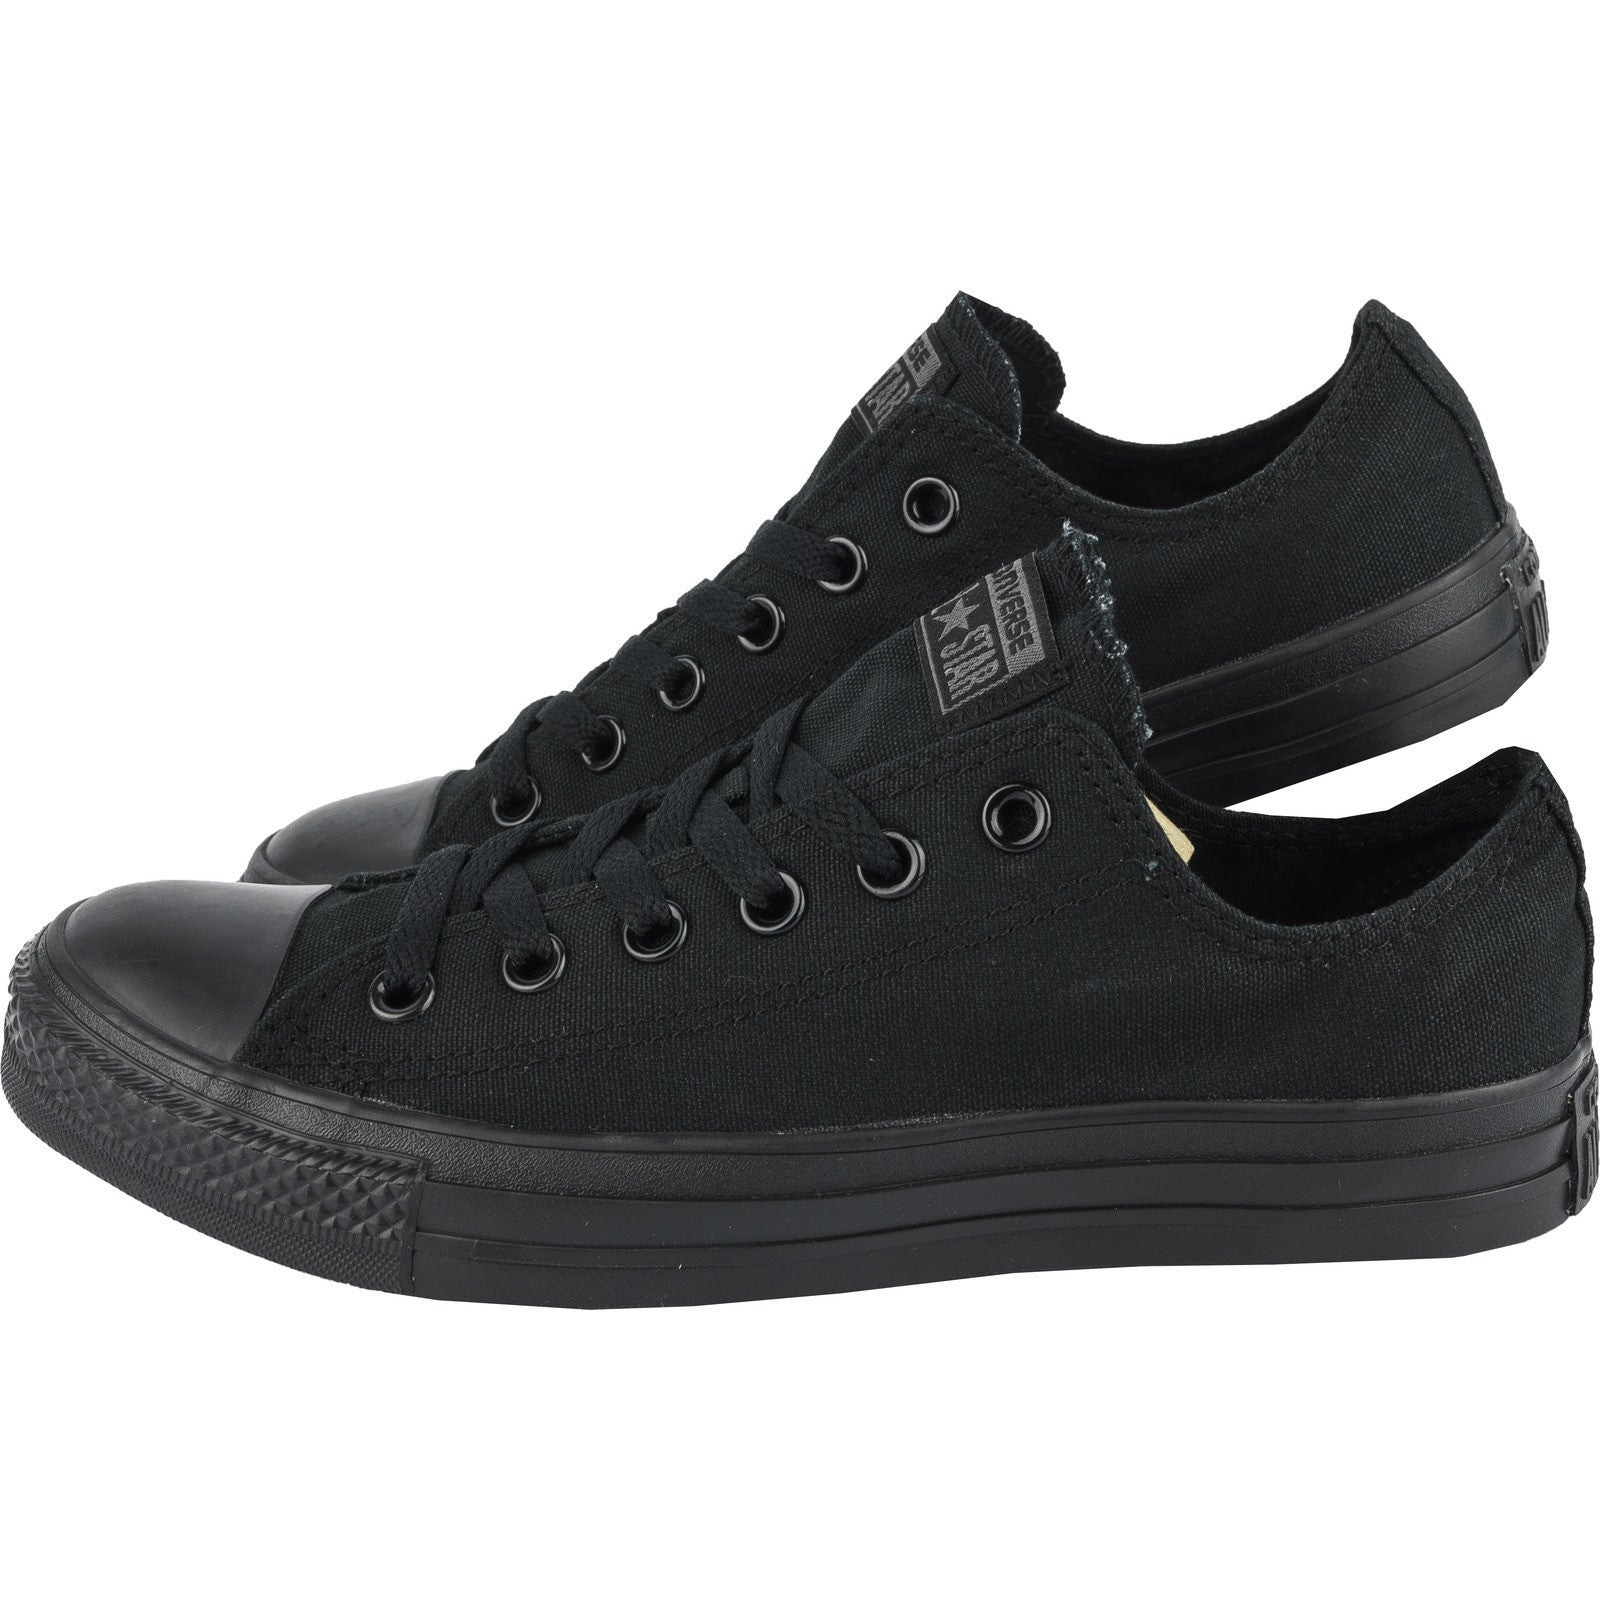 00f714fd0ad7 Converse Classic Chuck Taylor All Star All Black Monochrome Low M5039C  Sneaker Men Women ...